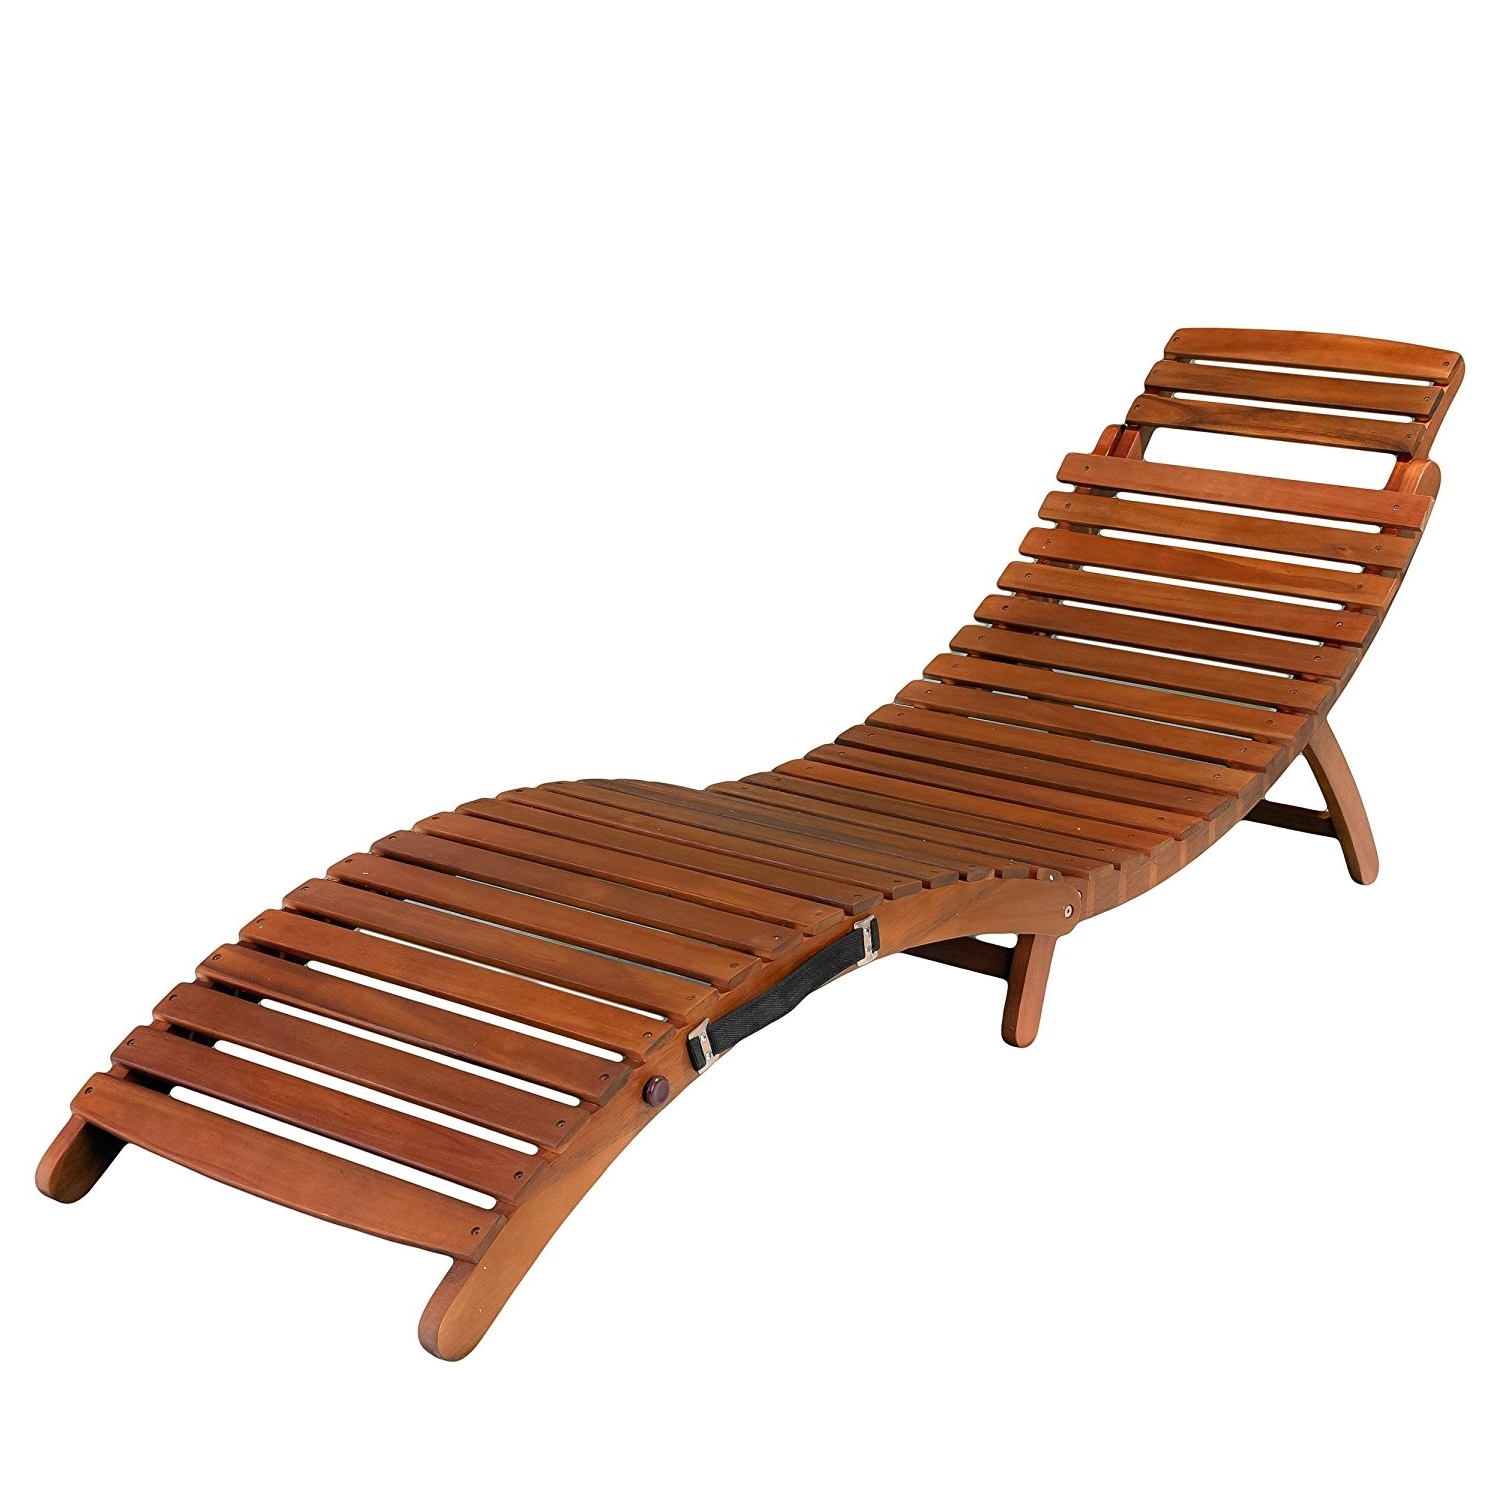 Amazon: Best Selling Del Rio Wood Outdoor Chaise Lounge Regarding Most Current Garden Chaise Lounge Chairs (View 12 of 15)